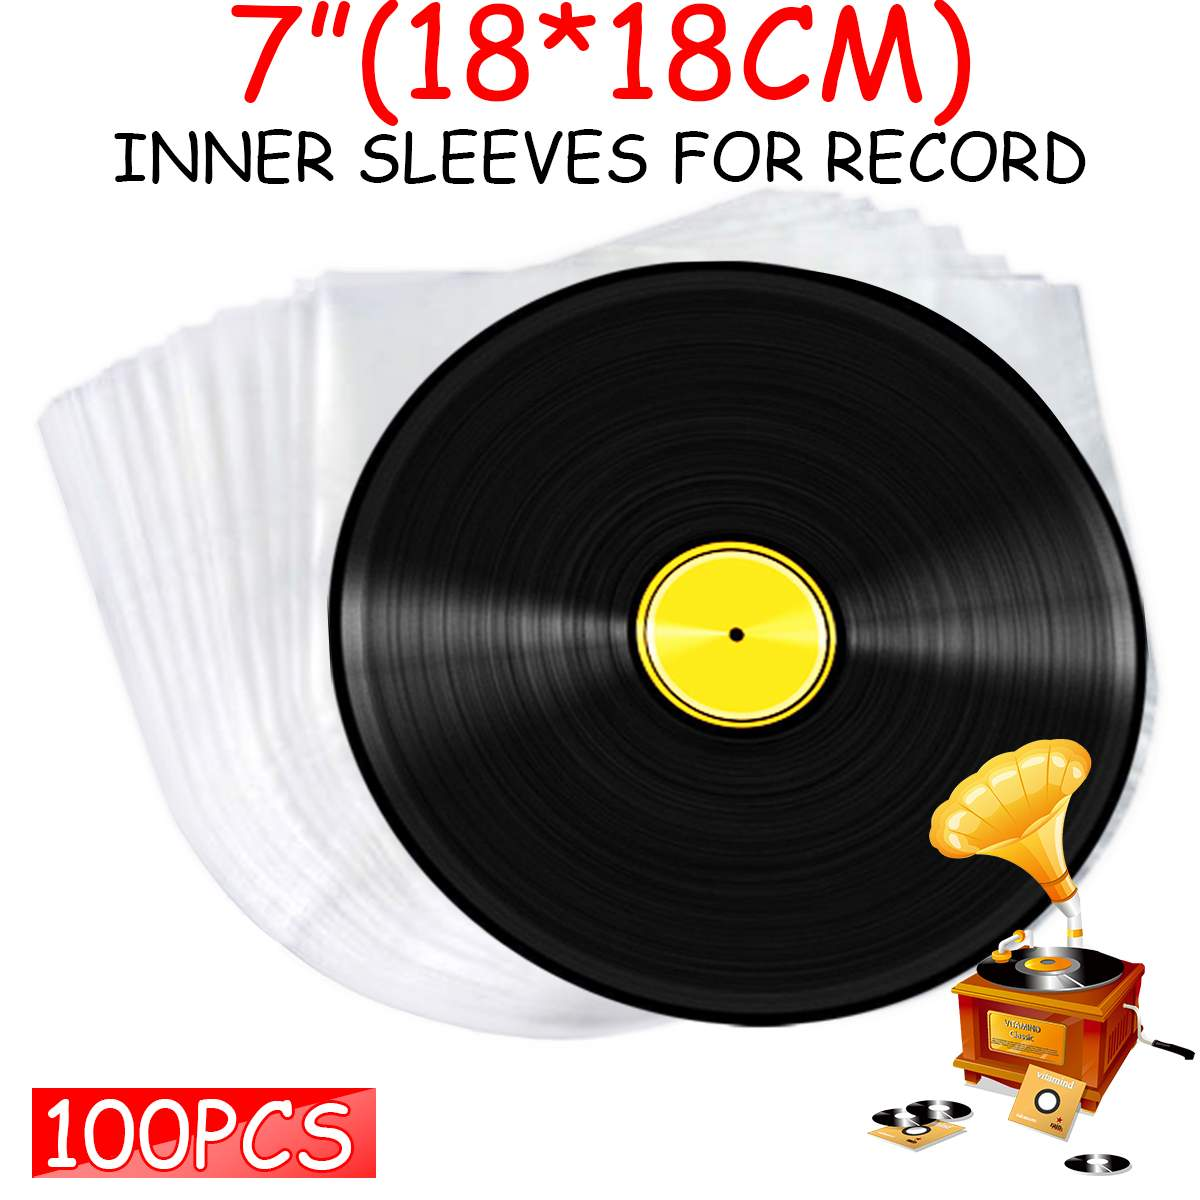 100pcs 7inch Vinyl Record Protecter LP Record Plastic Bags Anti-static Record Sleeves Outer Inner Plastic Clear Cover Container